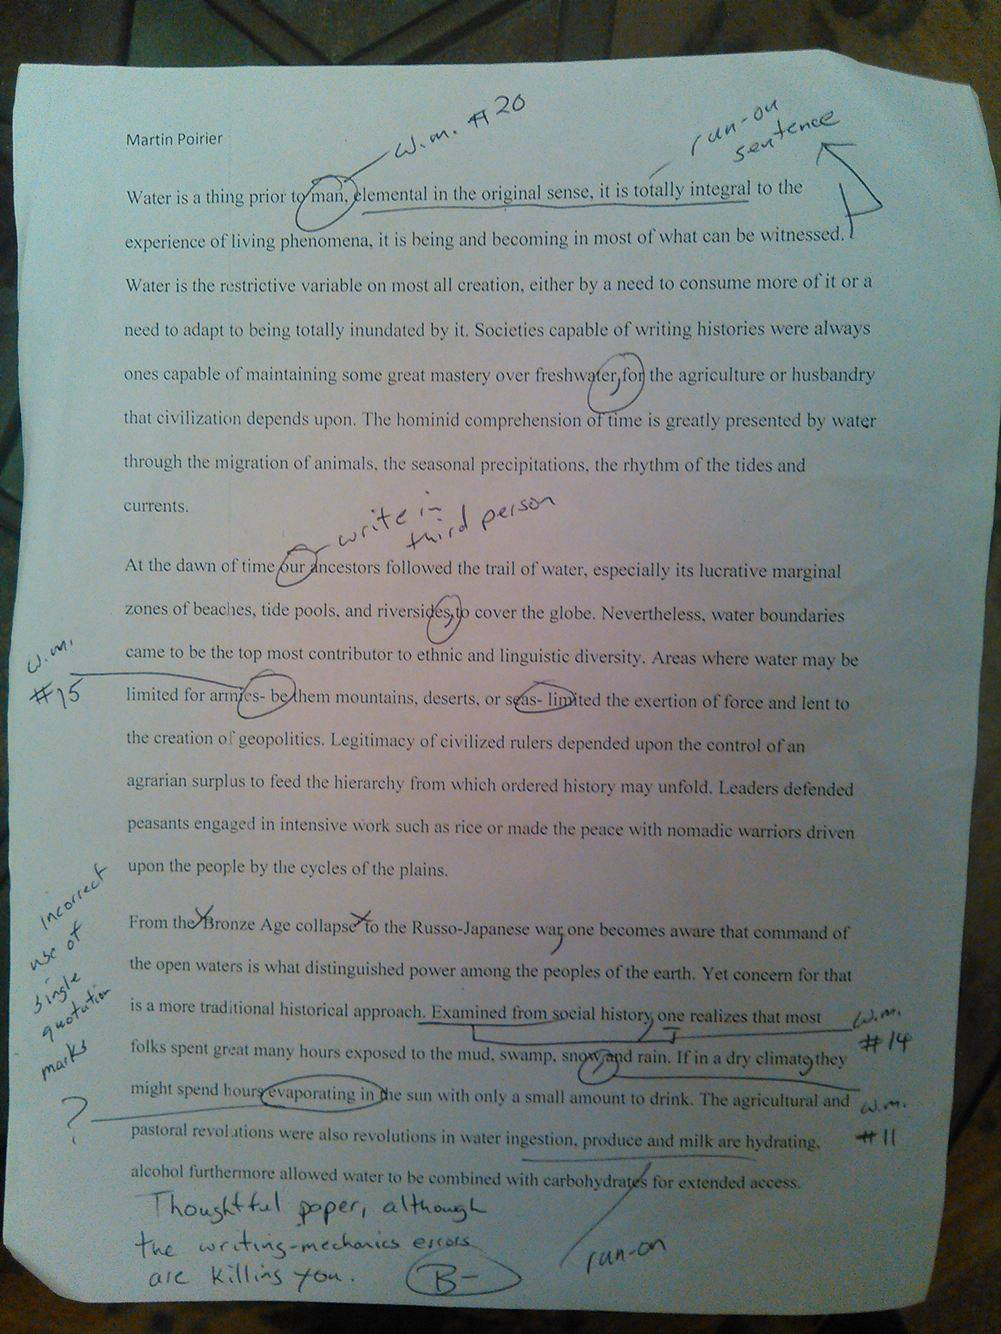 "uf professor lowers grade for use of the word ""man"" at the bottom of the essay davis final remarks on the paper state ""thoughtful paper although the writing mechanics errors are killing you """